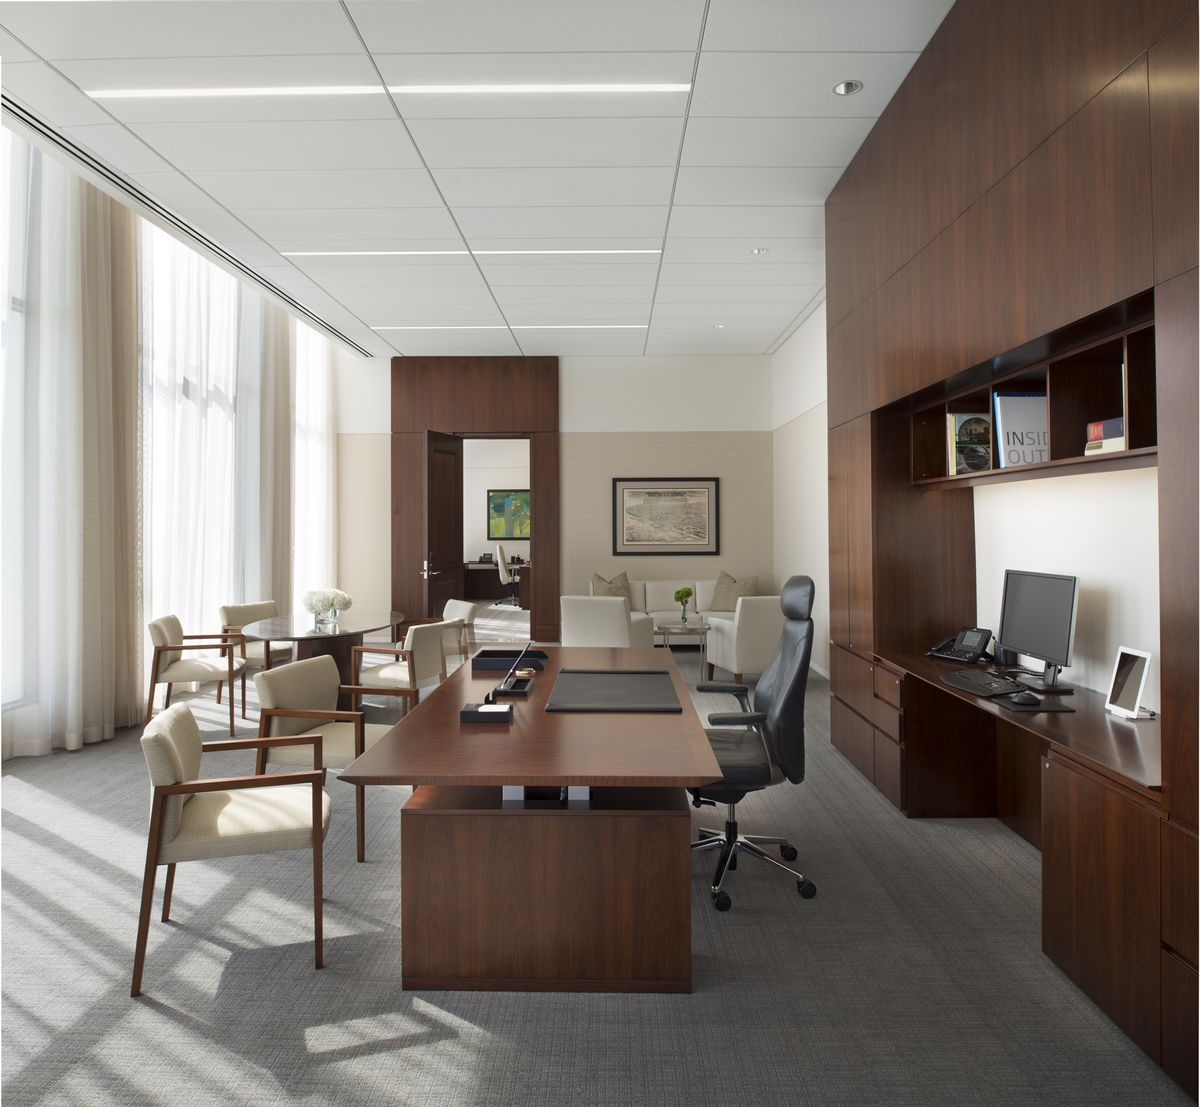 Executive Office Design: Ceo Office, Luxury Office And Office Interior Design On